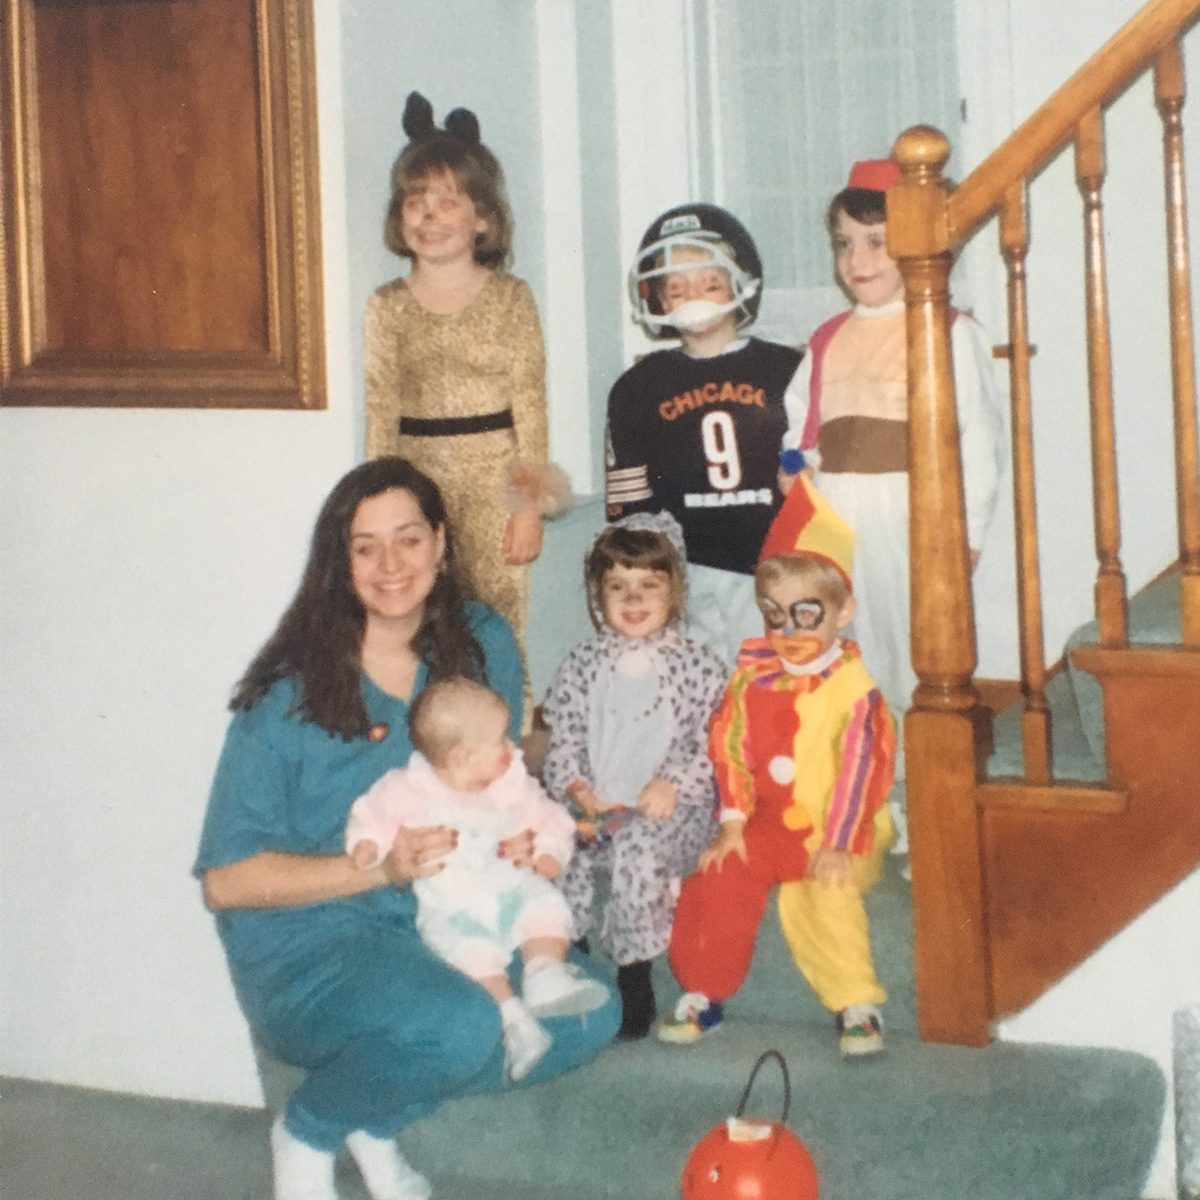 Halloween Costumes For Family Of 3 With A Baby.What Halloween Looked Like The Year You Were Born Taste Of